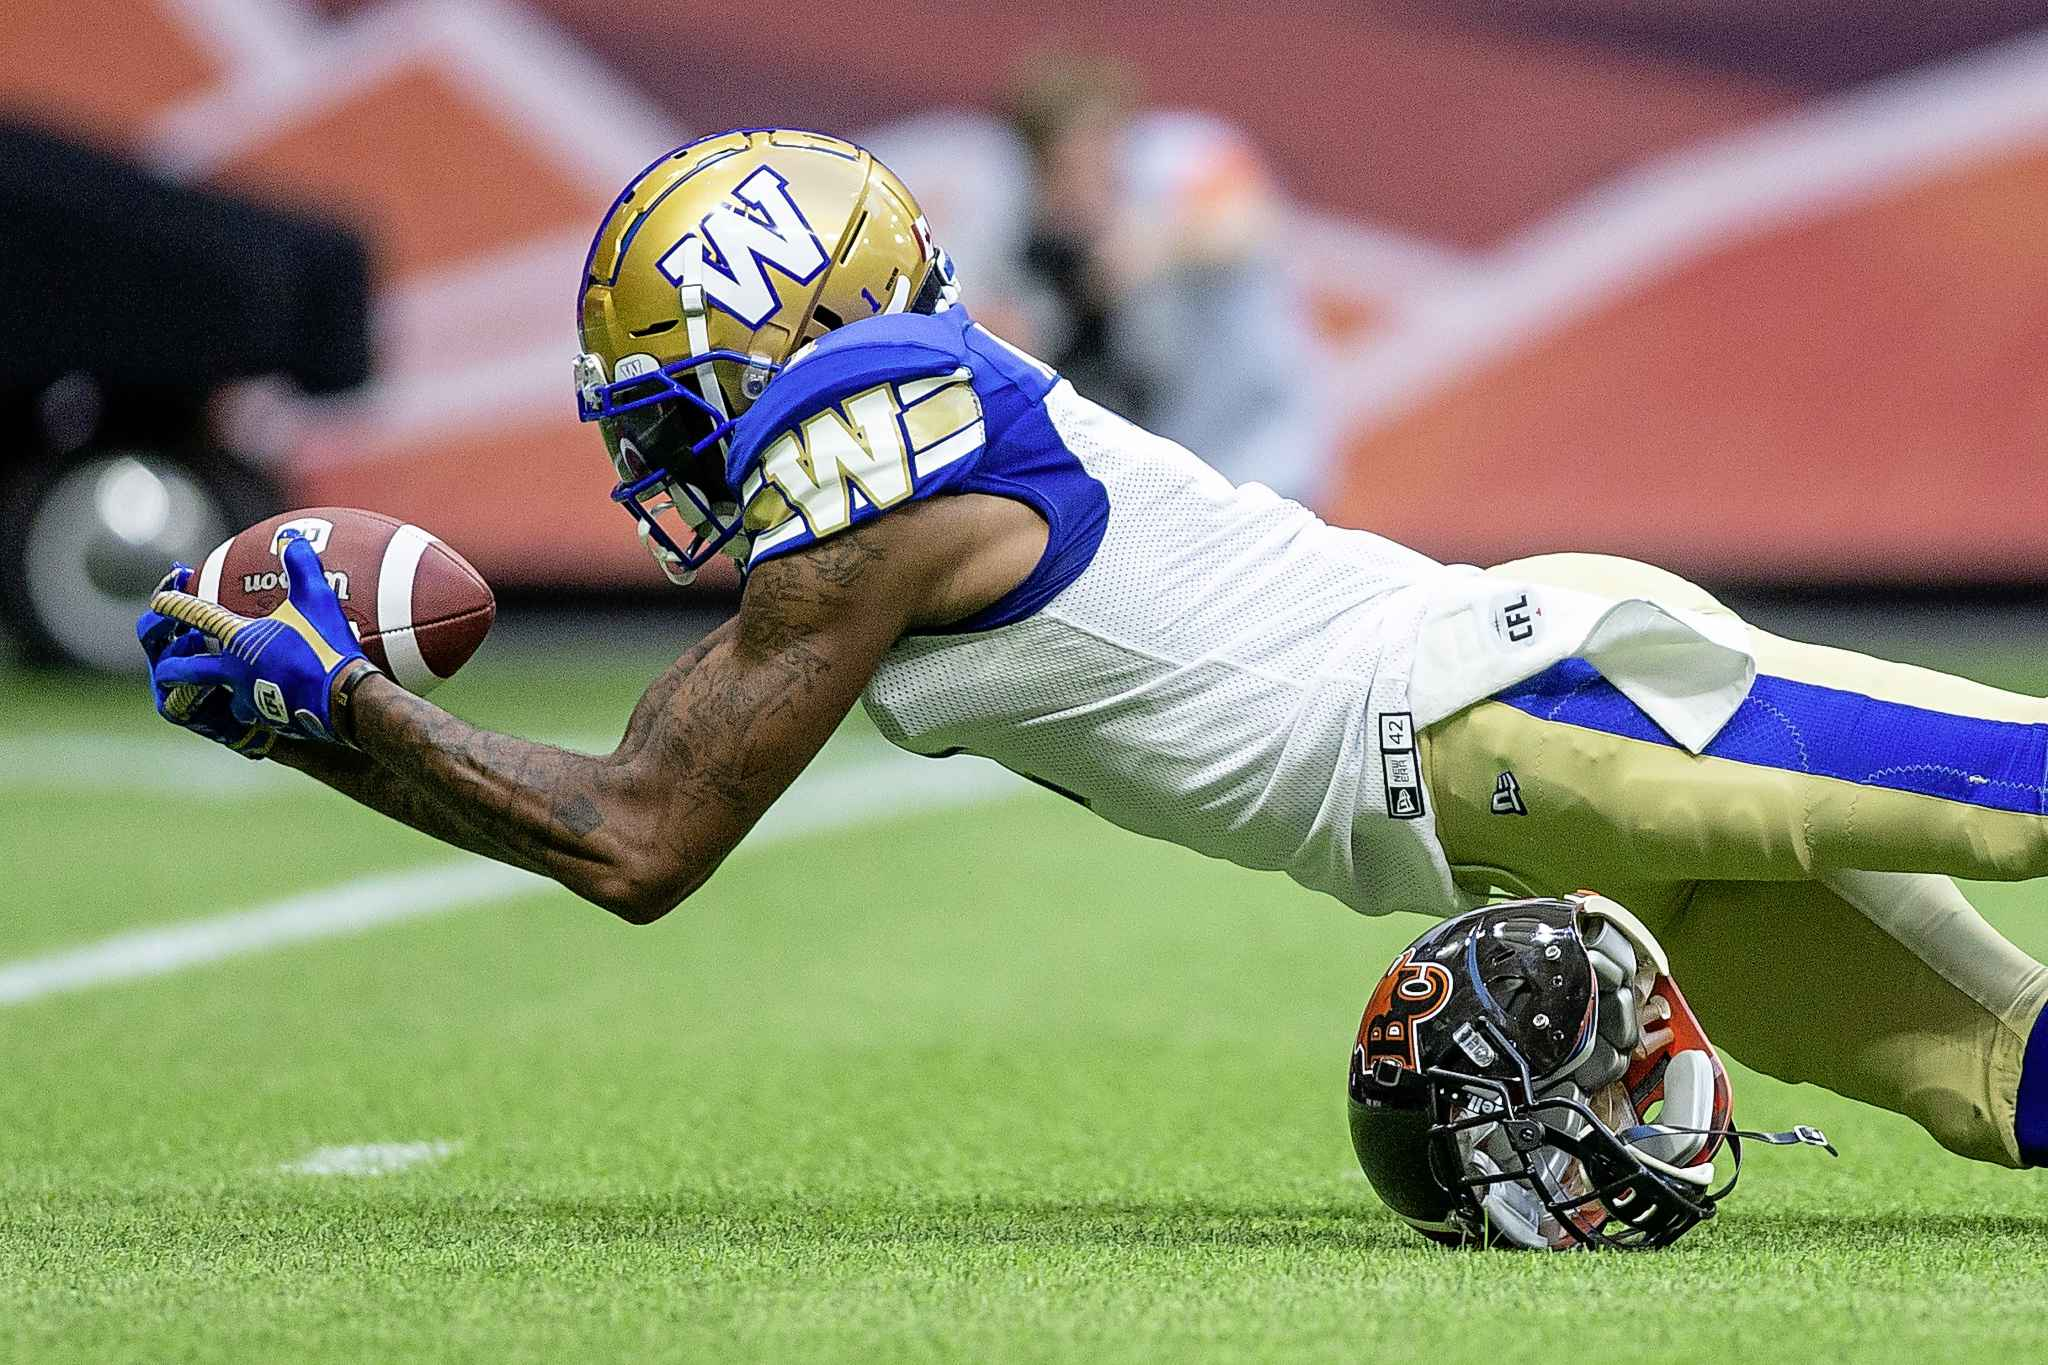 BEN NELMS / THE CANADIAN PRESS</p><p>Winnipeg Blue Bombers wide receiver Marvin Adams (1) dives with the ball after being tackled by B.C. Lions' T/J. Lee (6) during the first half.</p>